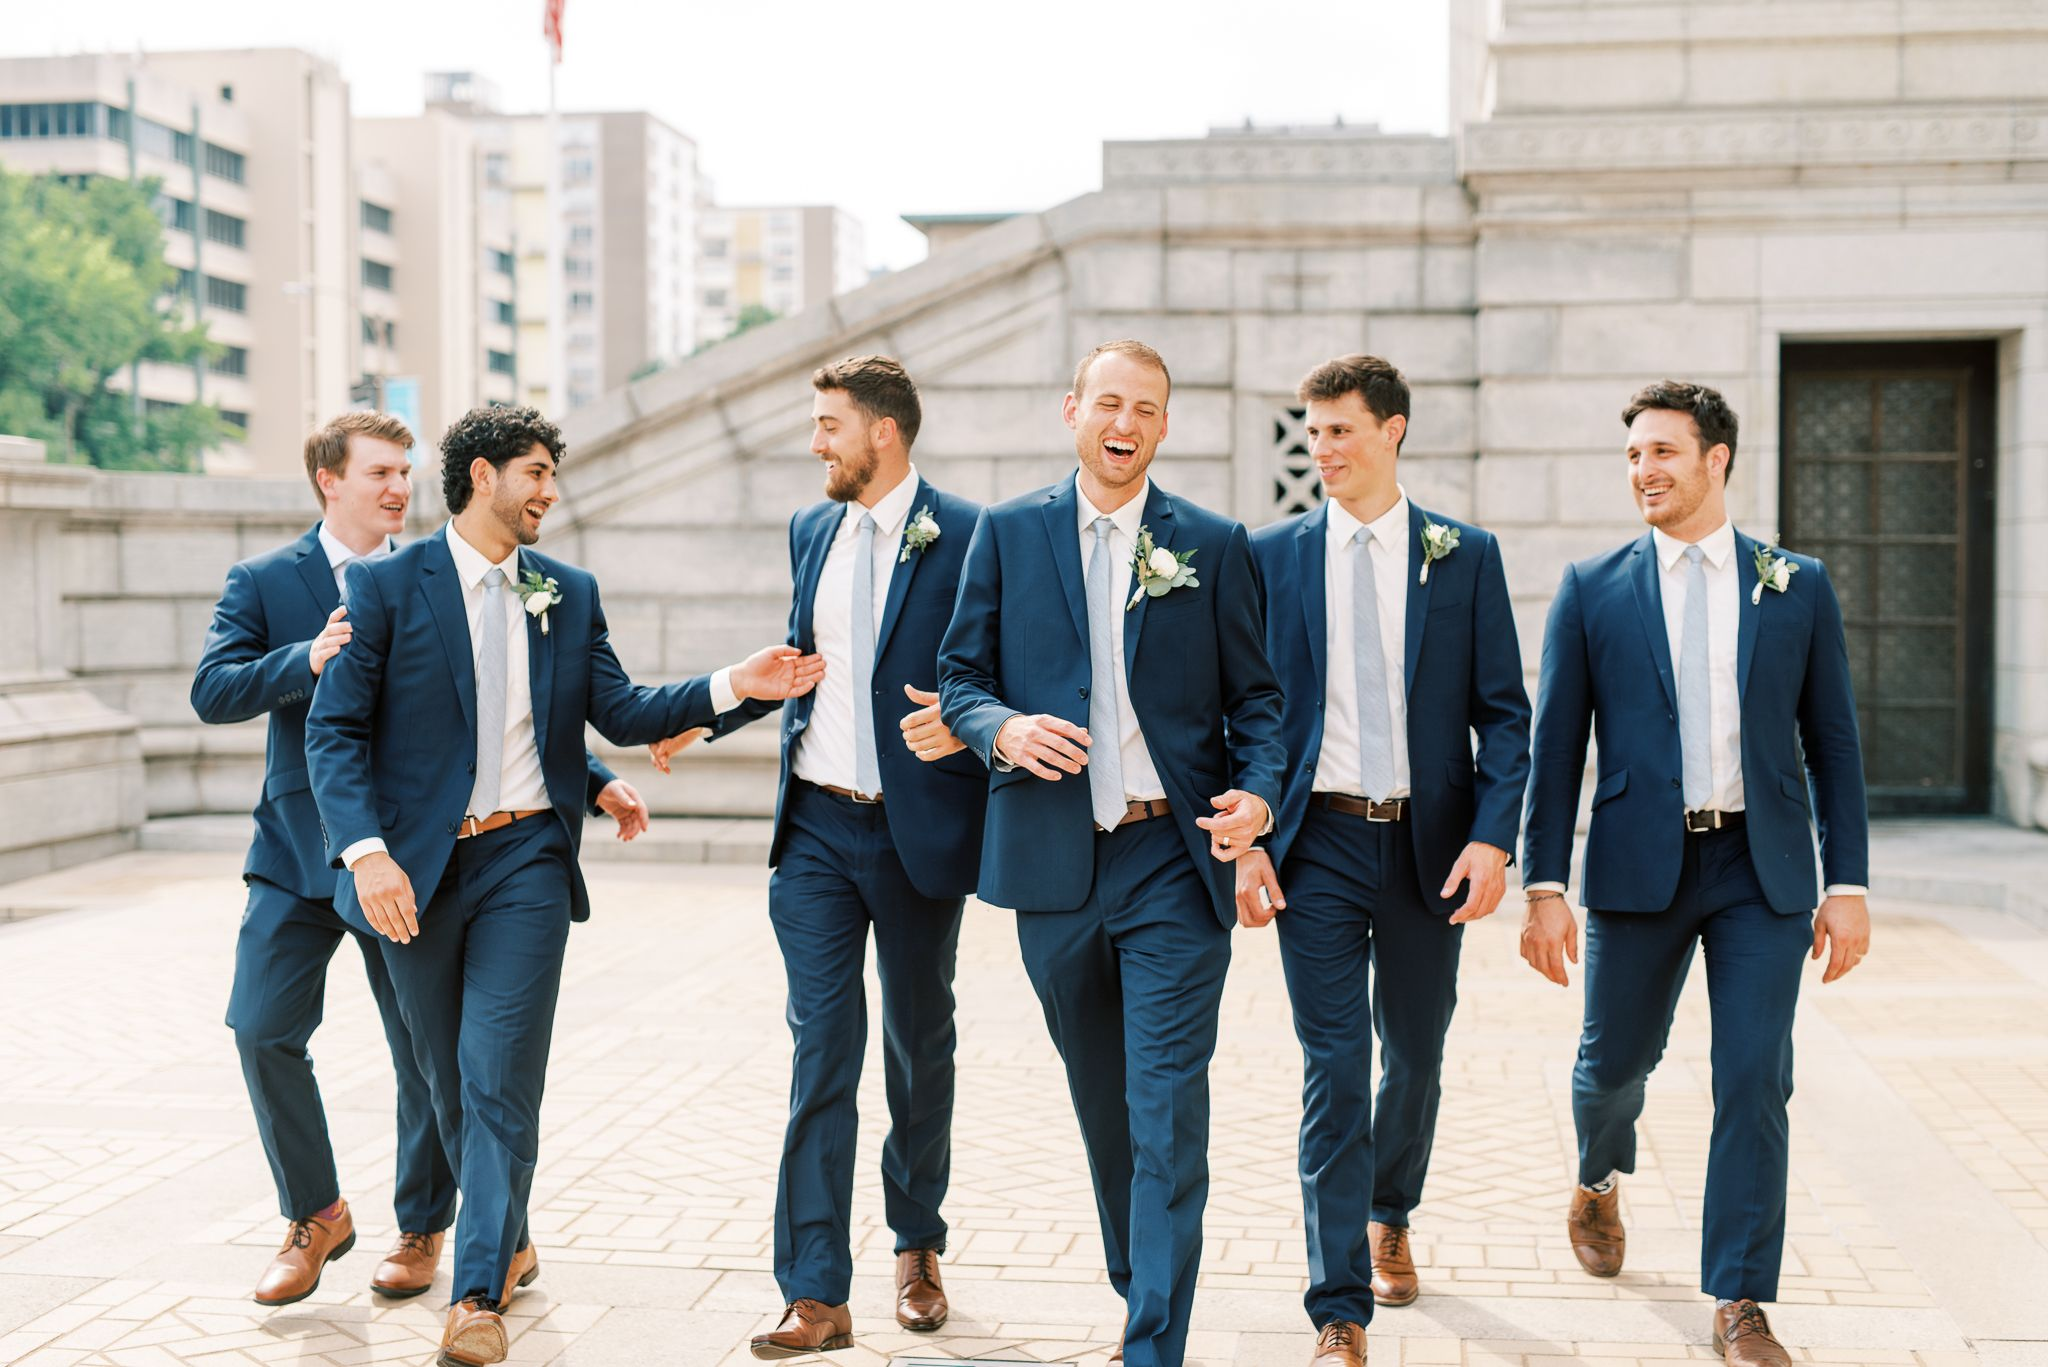 St. Louis Public Library Photography of groomsmen in navy blue tux by St Louis Wedding Photographer JKG Photography